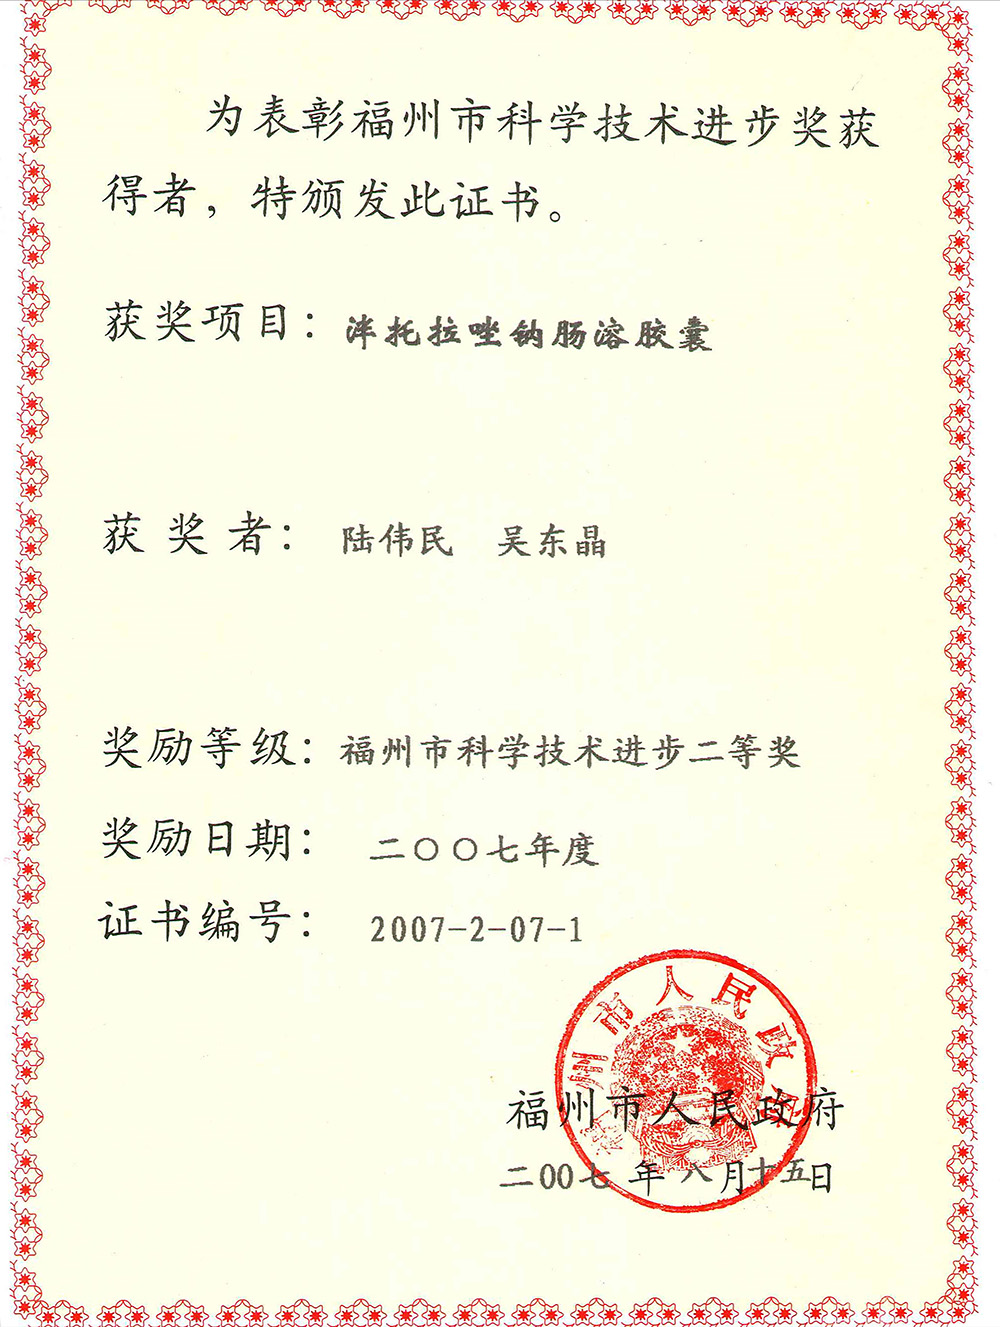 Second Prize of Fuzhou Science and Technology Progress Award